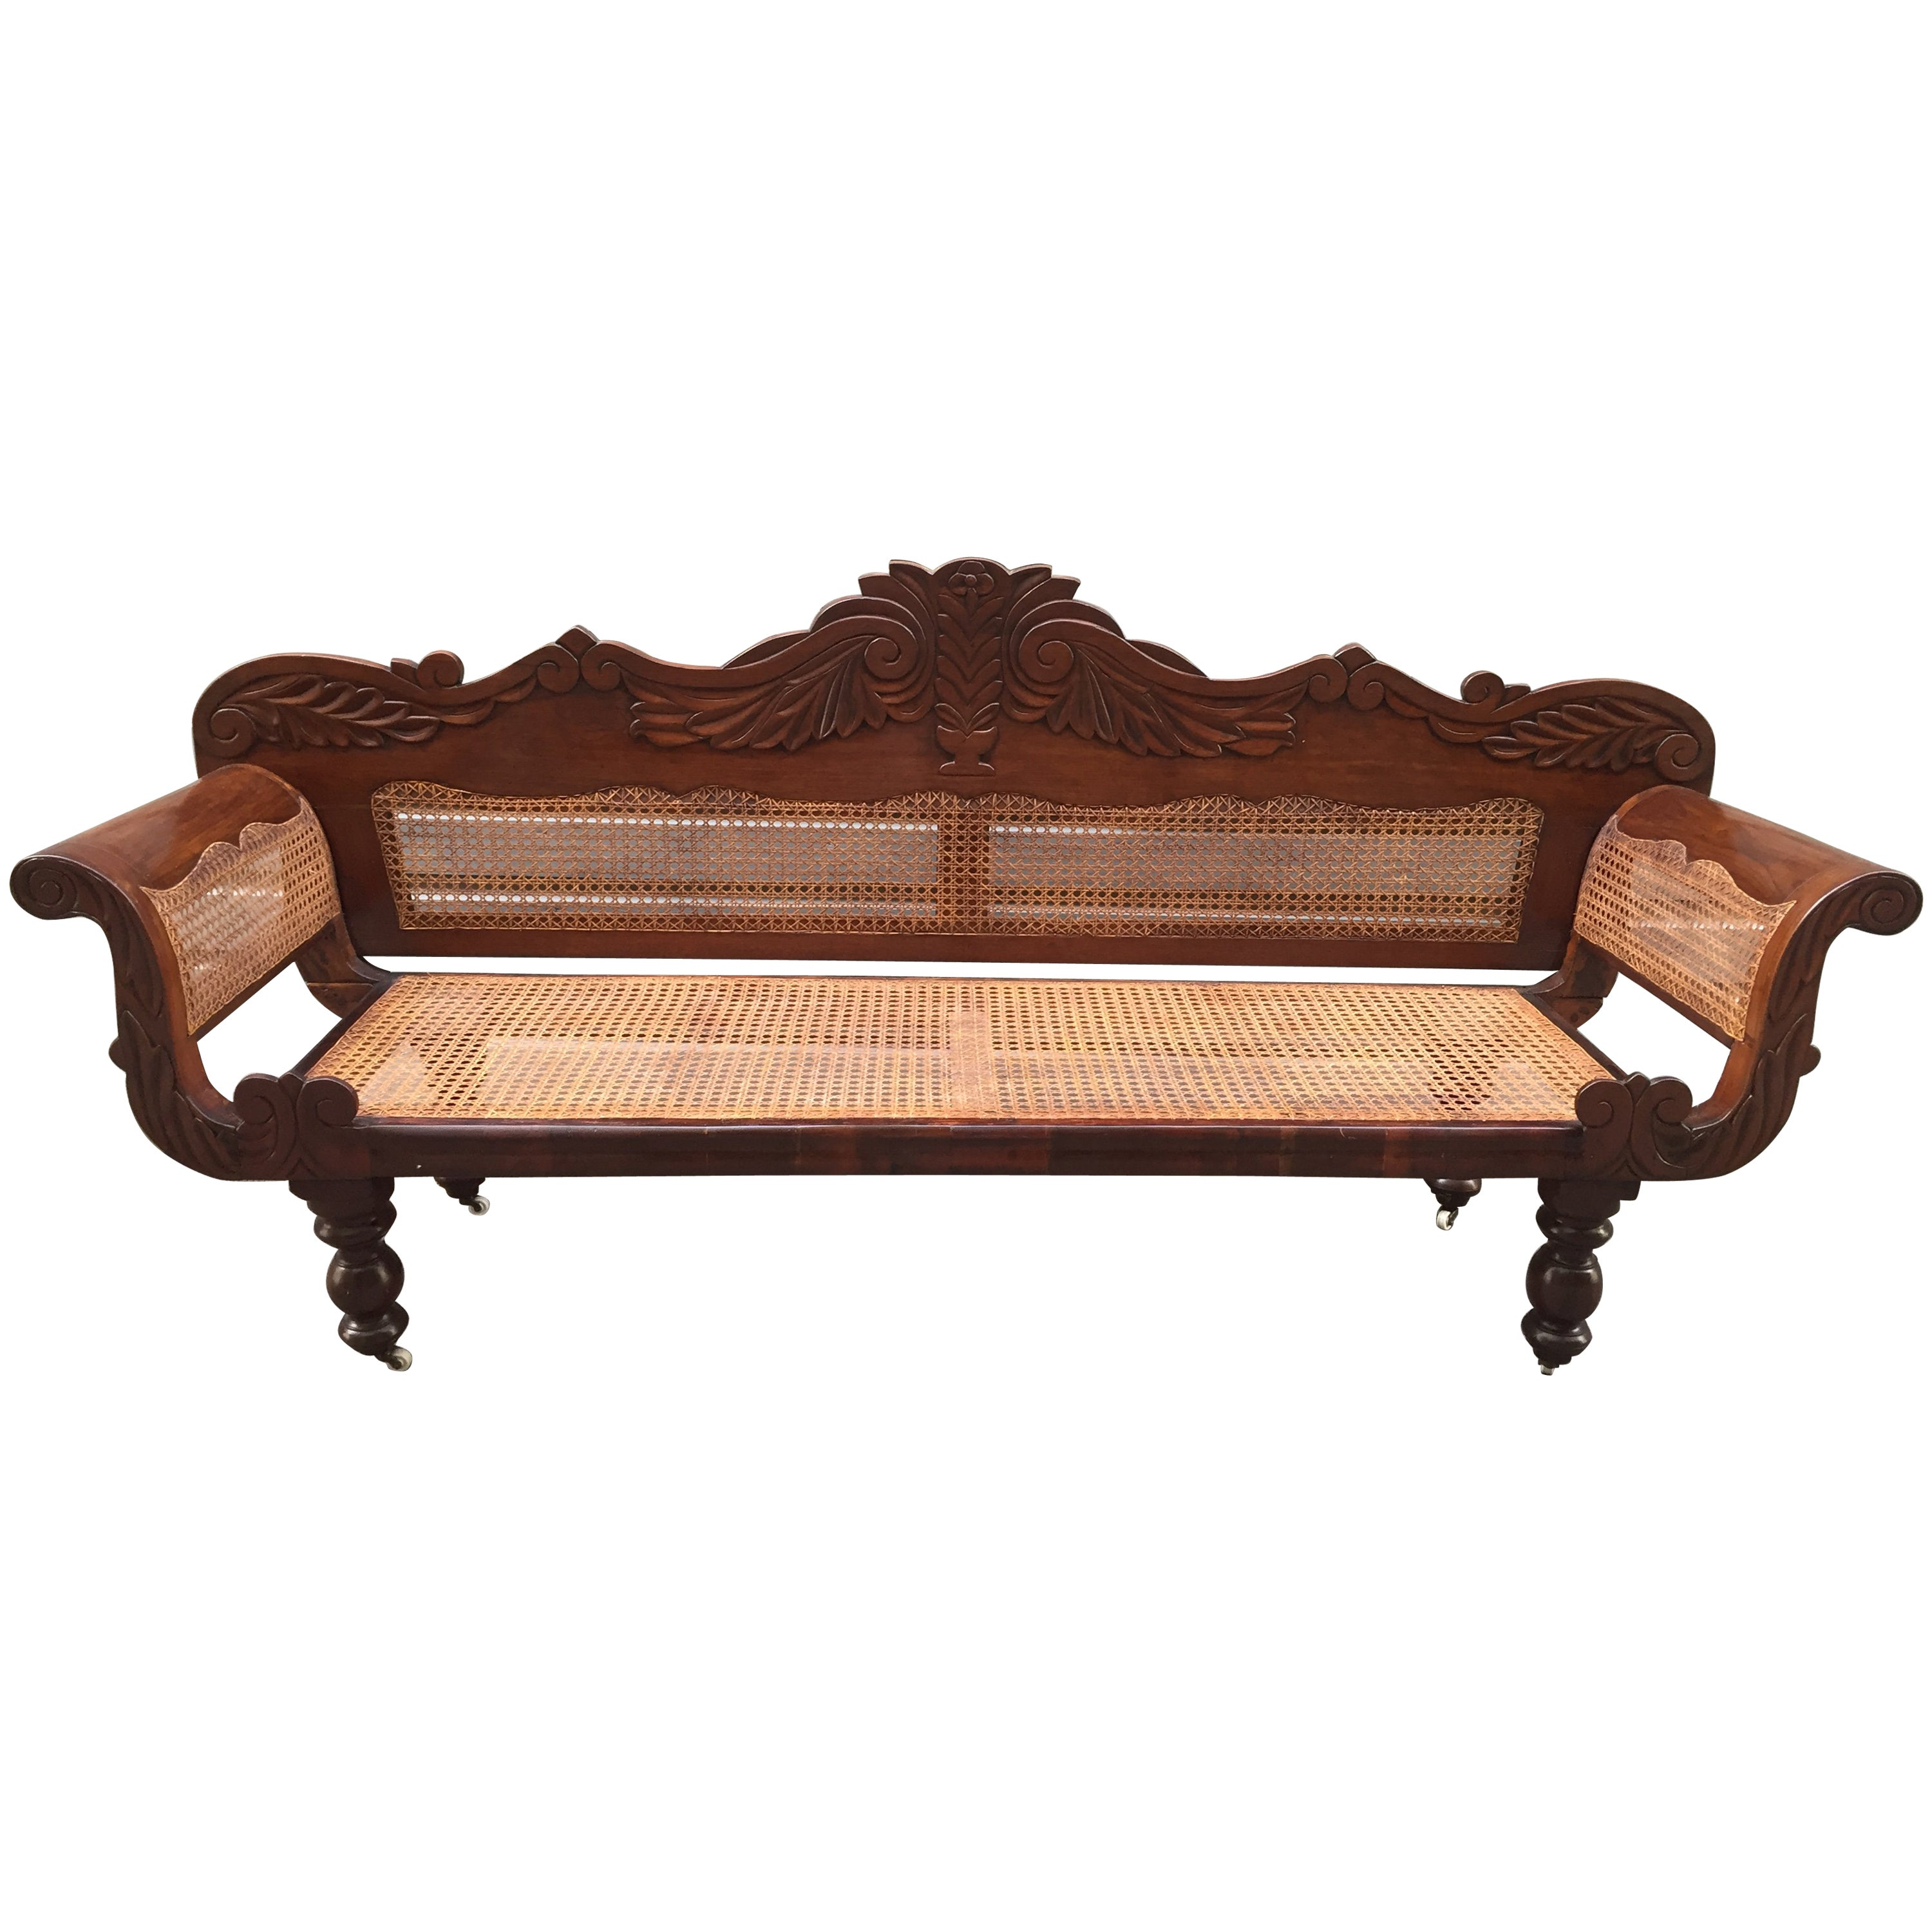 Phenomenal Jamaican Furniture 14 For Sale At 1Stdibs Pdpeps Interior Chair Design Pdpepsorg